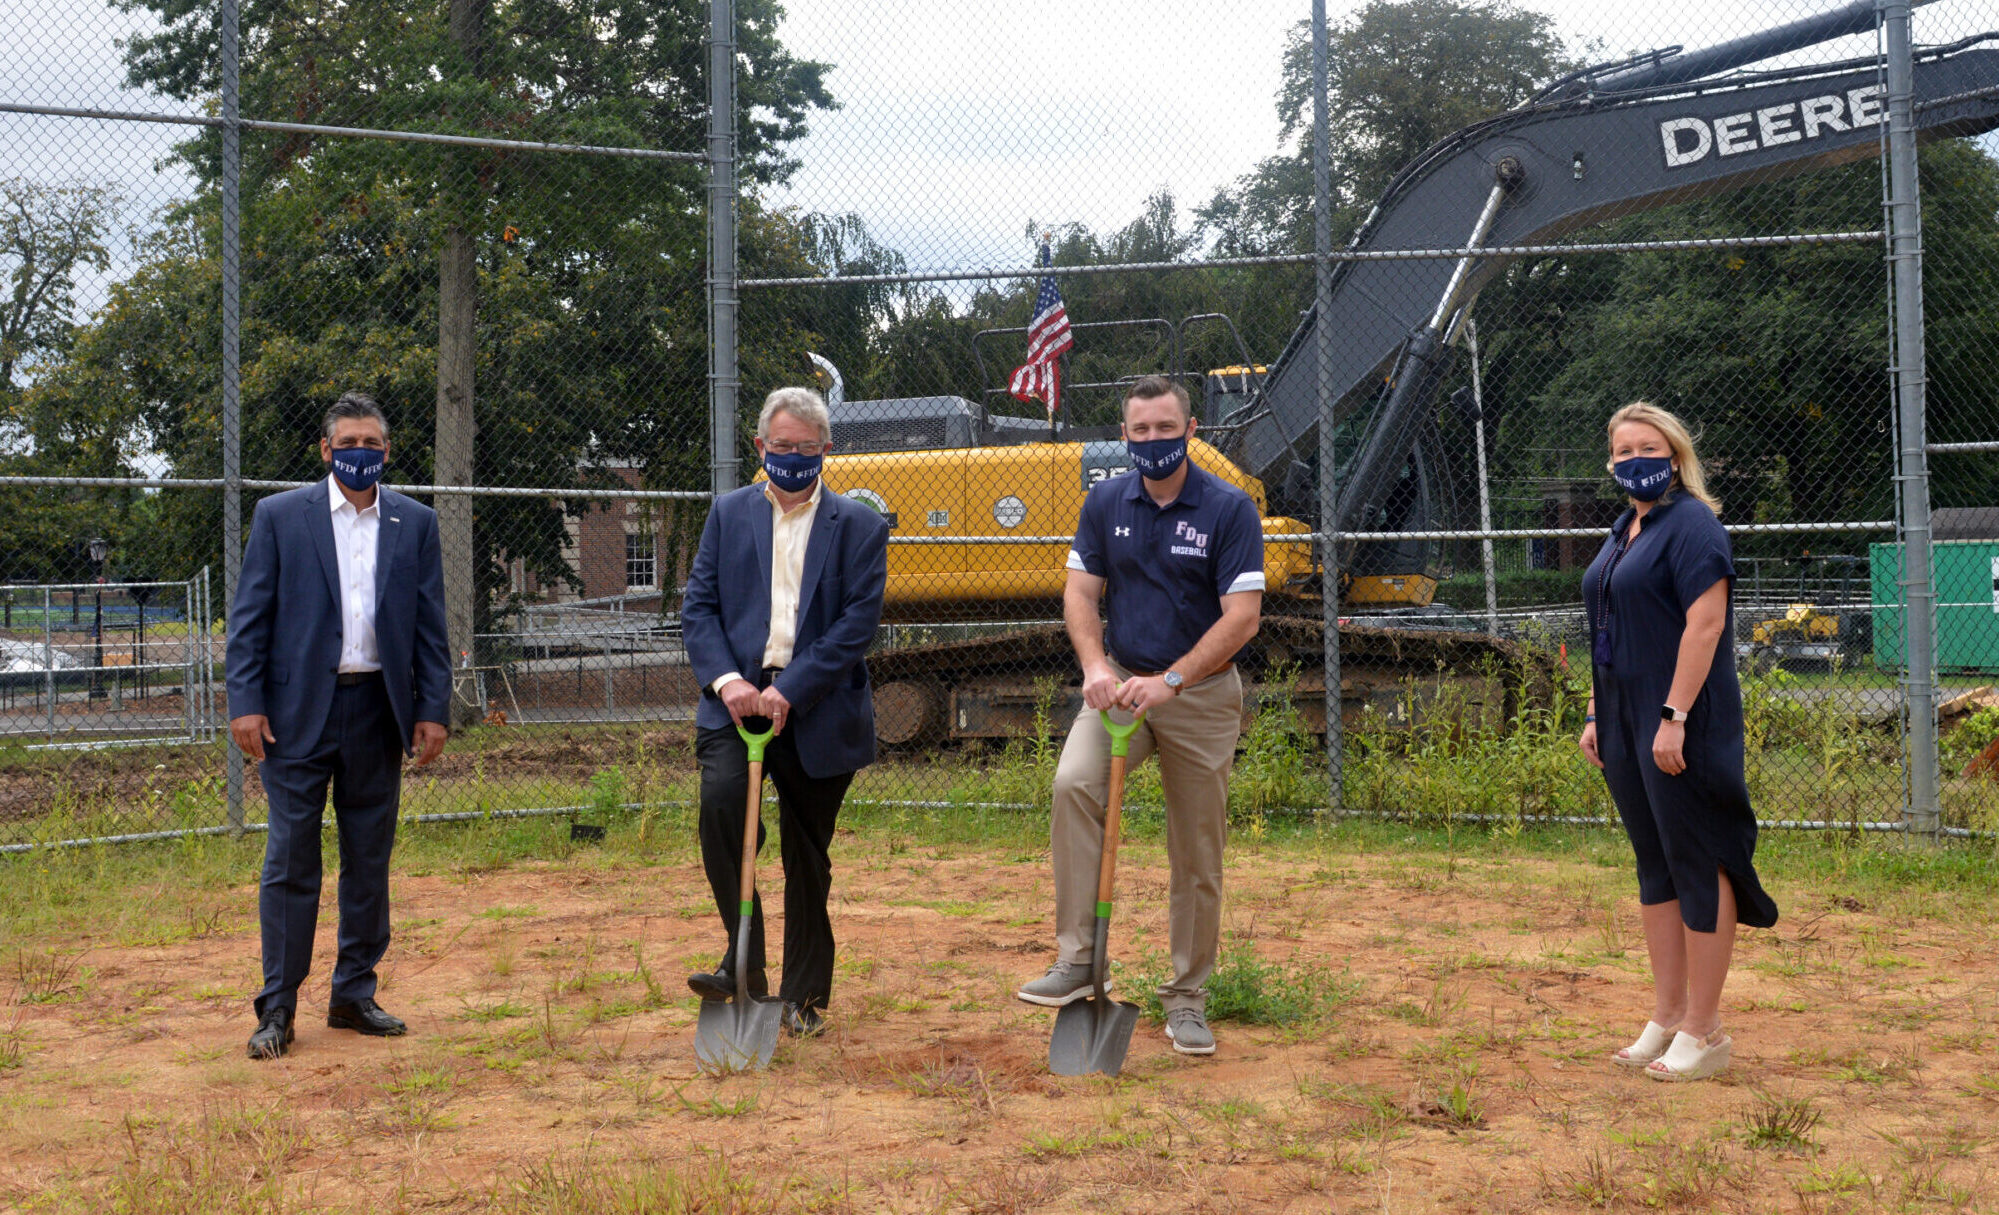 President Capuano, Vice President for Facilities & Auxiliary Services Dick Frick, Head Baseball Coach Jamie Quinn and Director of Athletics Jenn Noon stand on the location of the future Naimoli Field. Frick and Quinn hold shovels.